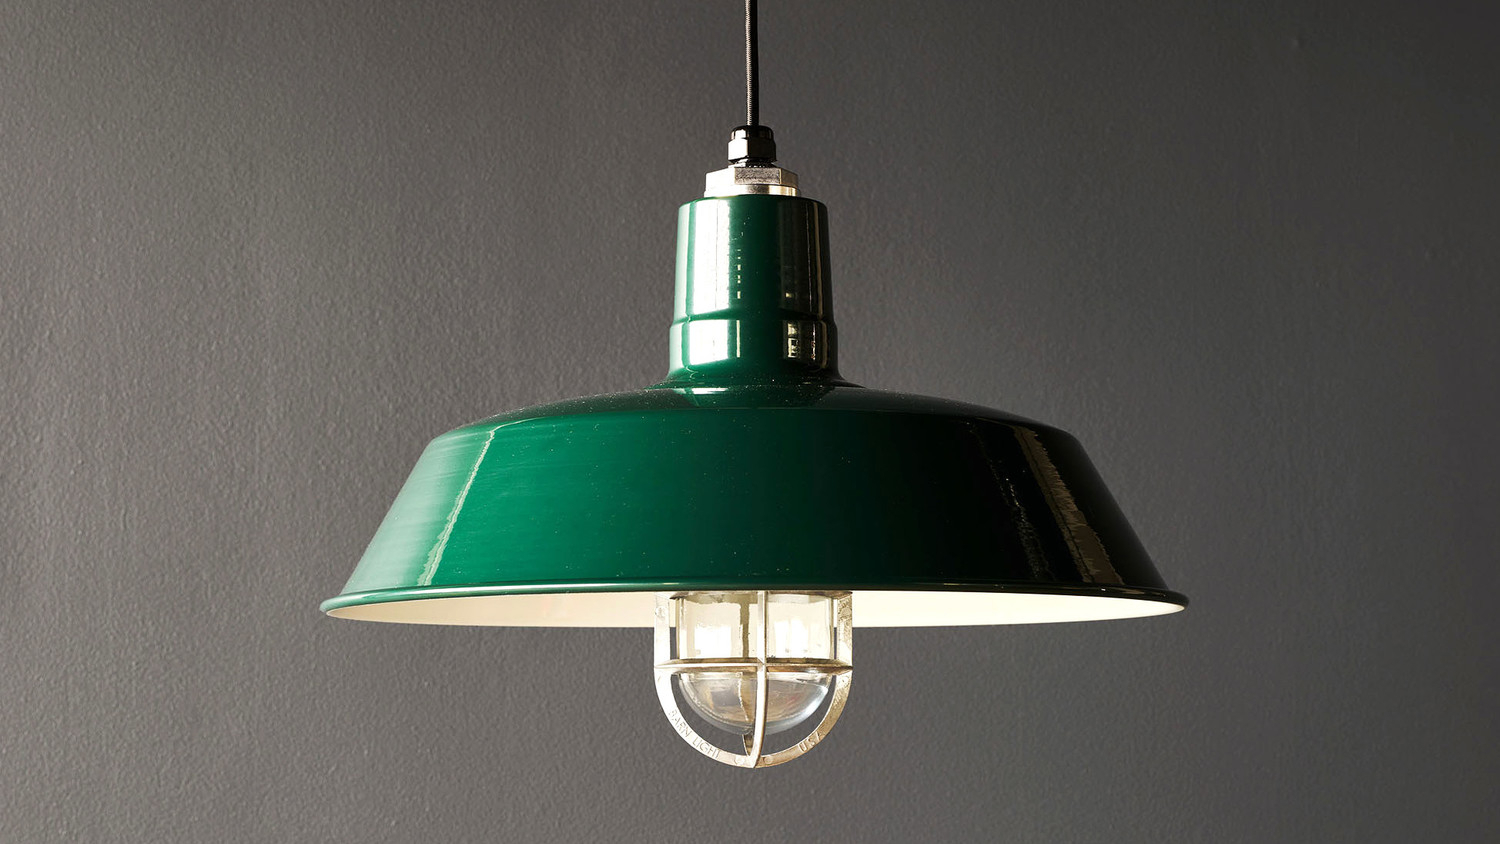 Special Prices On Serena 1-Light Cone Pendant Ivy Bronx pertaining to Ammerman 1-Light Cone Pendants (Image 27 of 30)